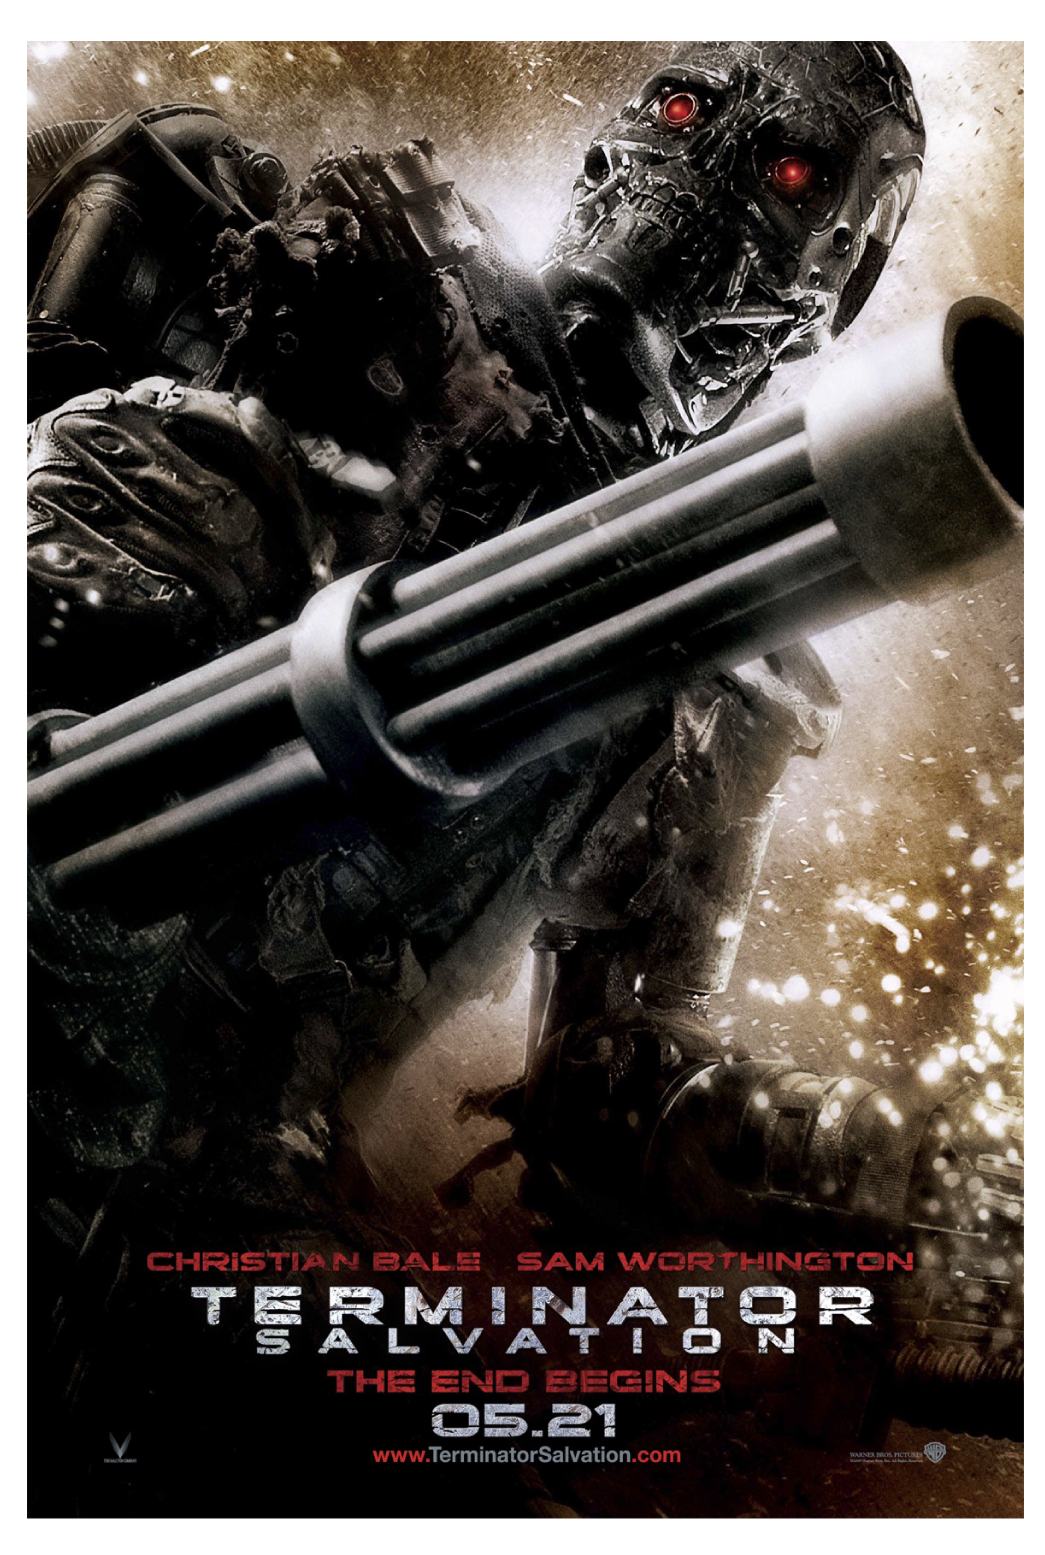 poster-terminator-salvation - 1975.5KB